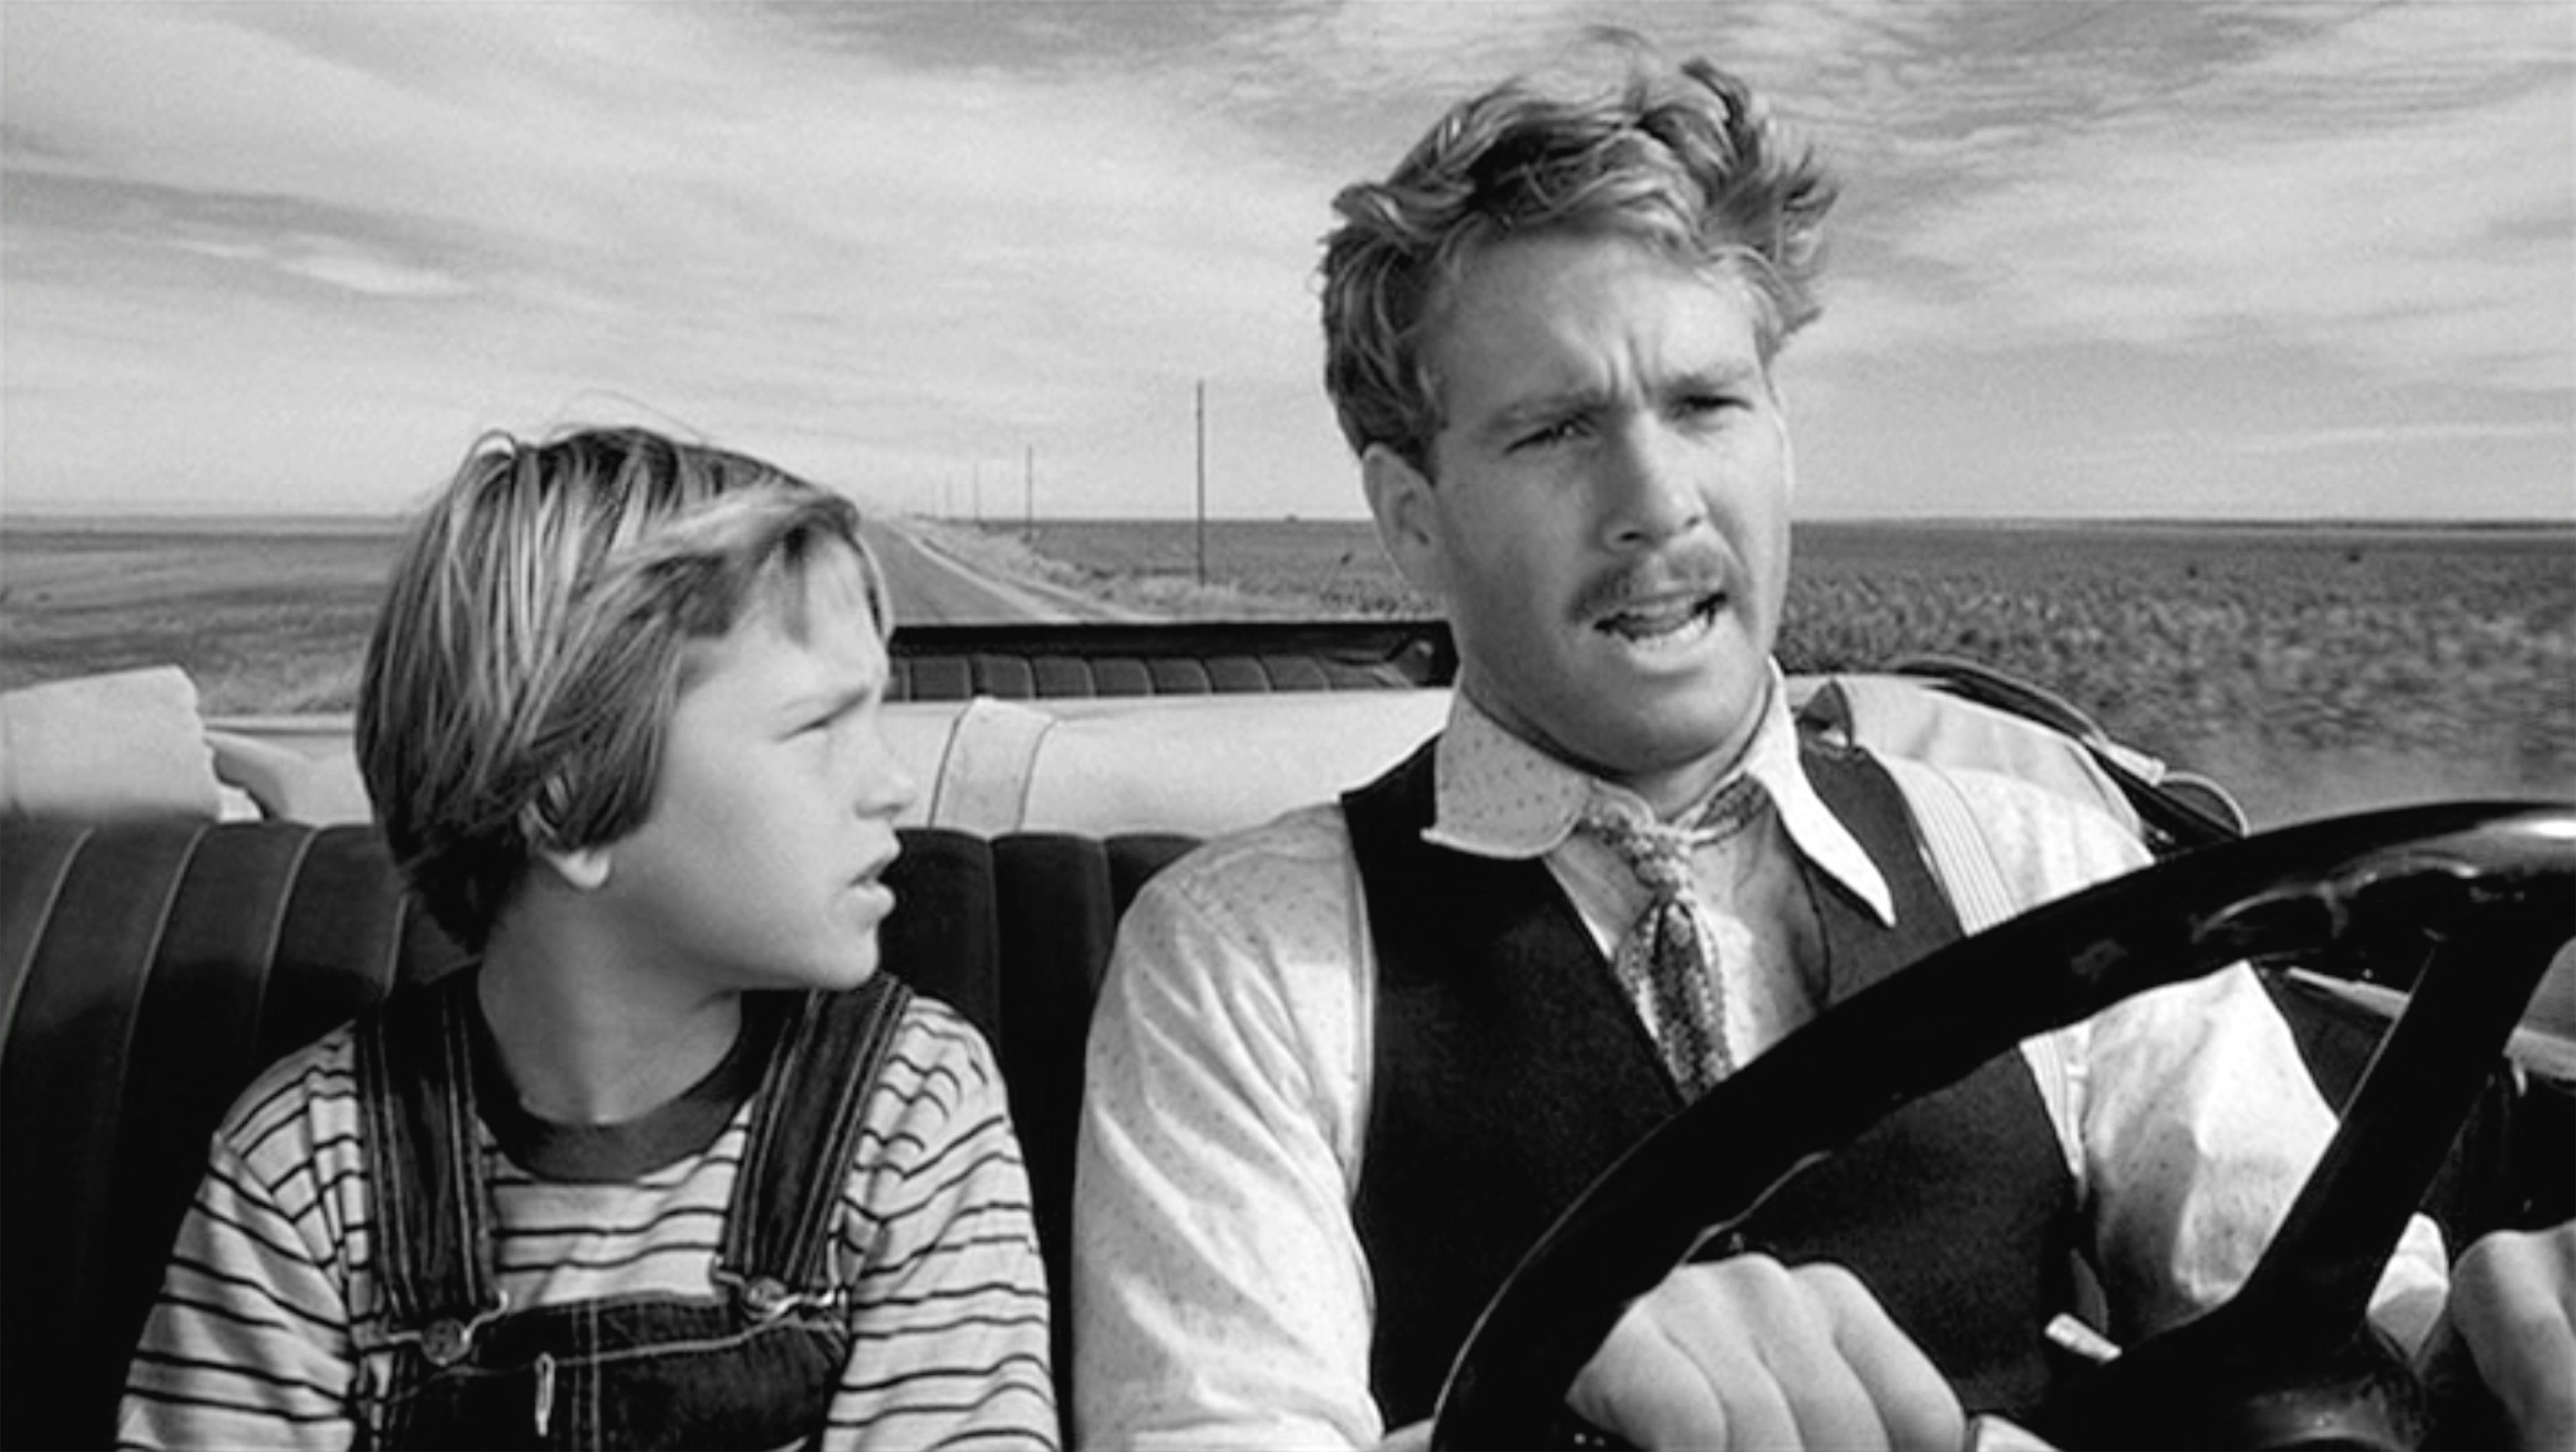 Tatum O'Neal and Ryan O'Neal on screen in Paper Moon. (Photo: CBS via Getty Images)